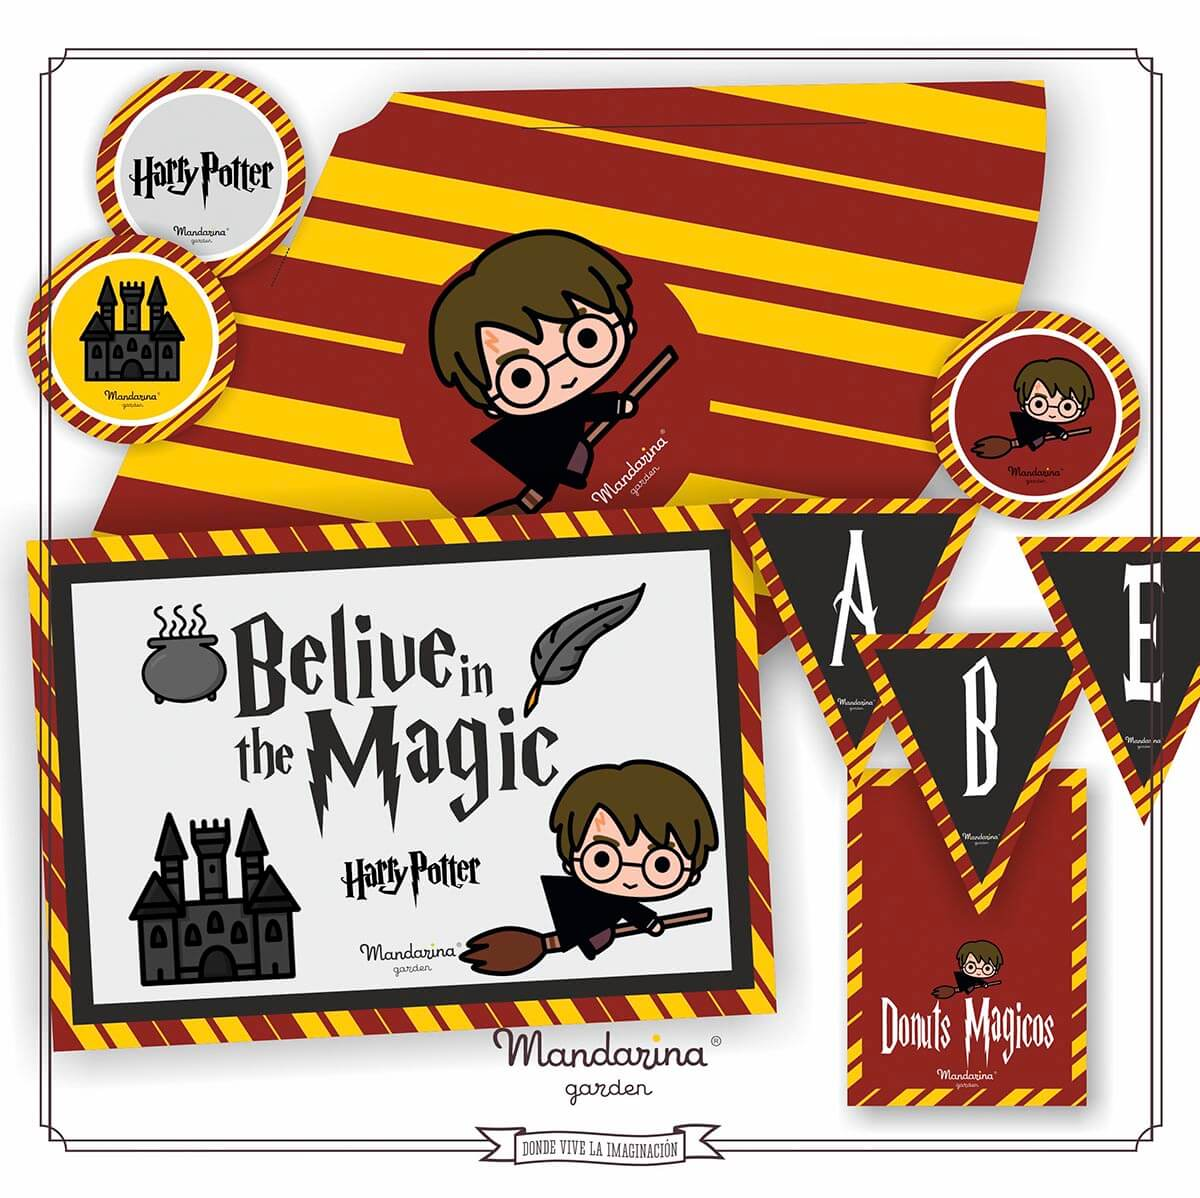 Decoration kit to celebrate your birthday at home themed by Harry Potter